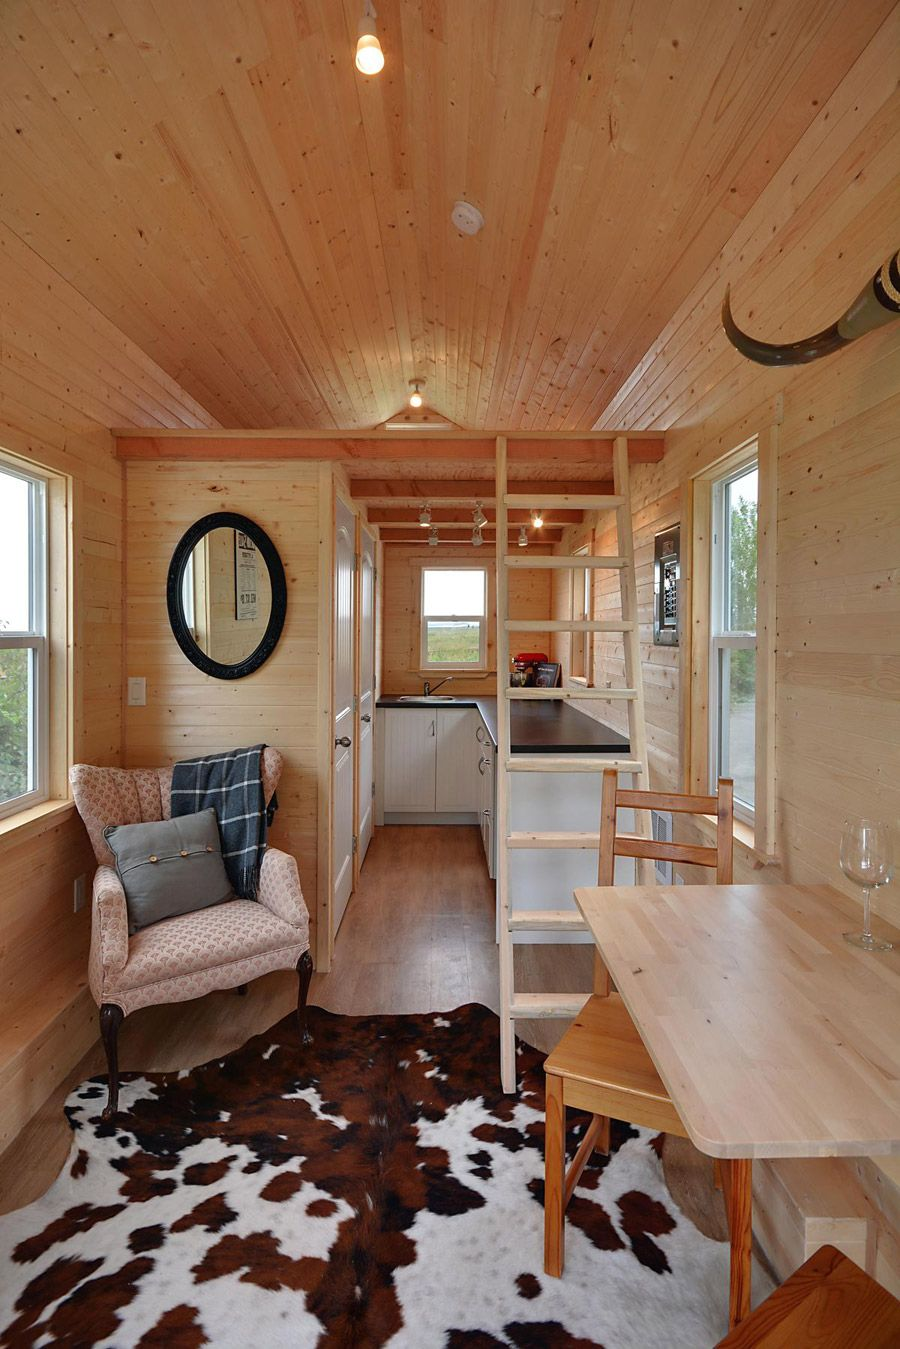 Swell 17 Best Images About Home On Wheels On Pinterest Tiny Homes On Largest Home Design Picture Inspirations Pitcheantrous